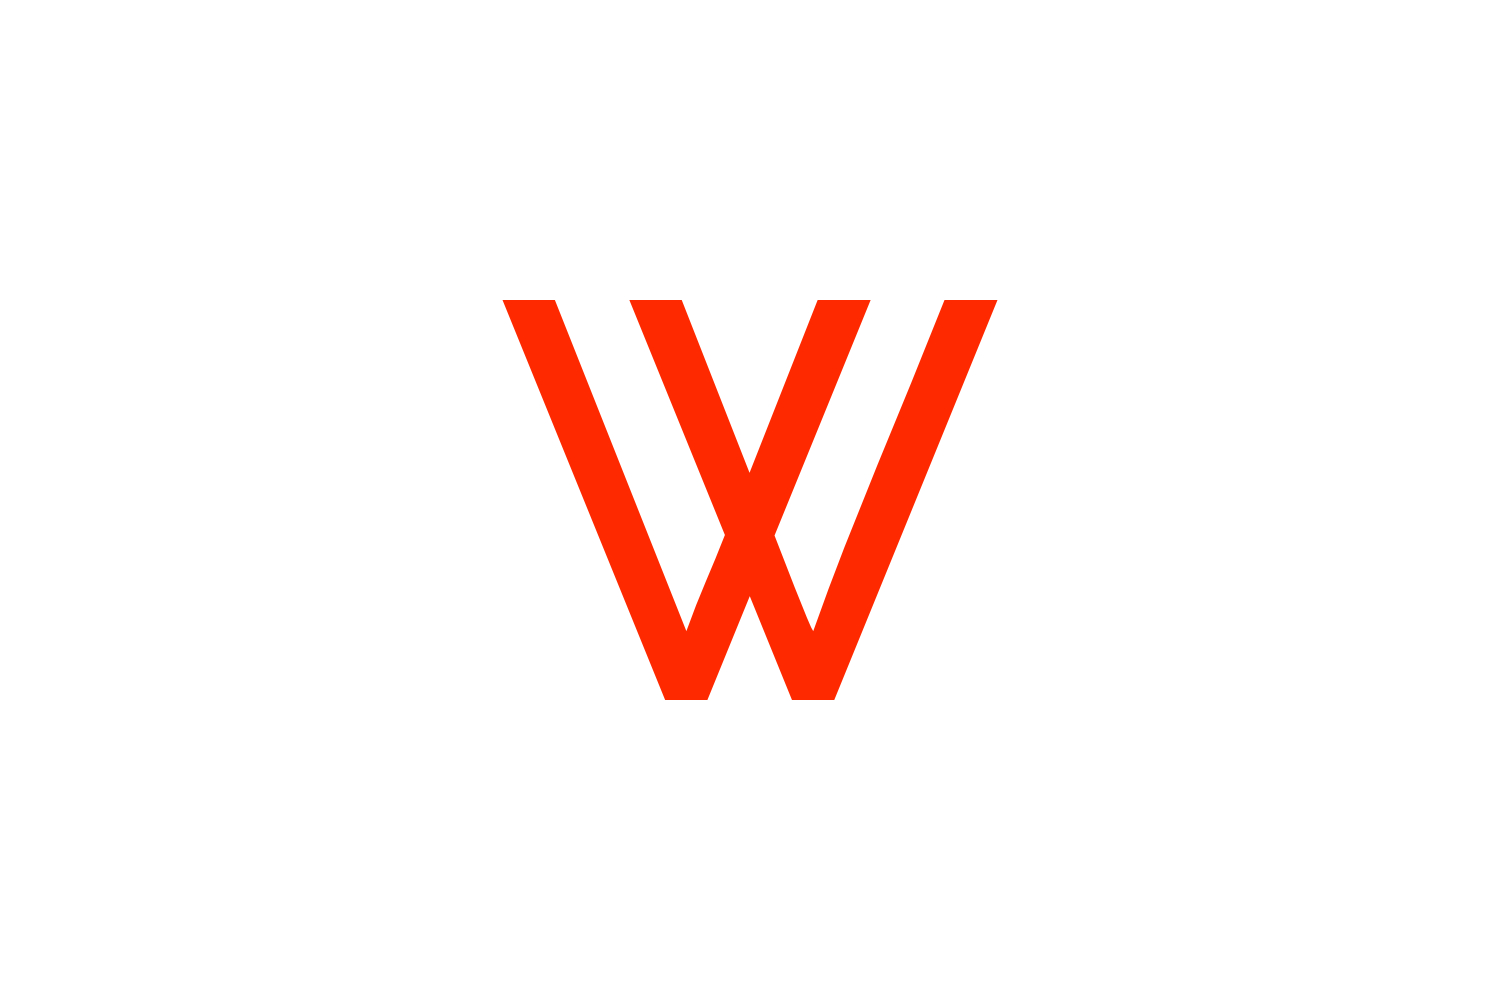 w letter logo example image 1